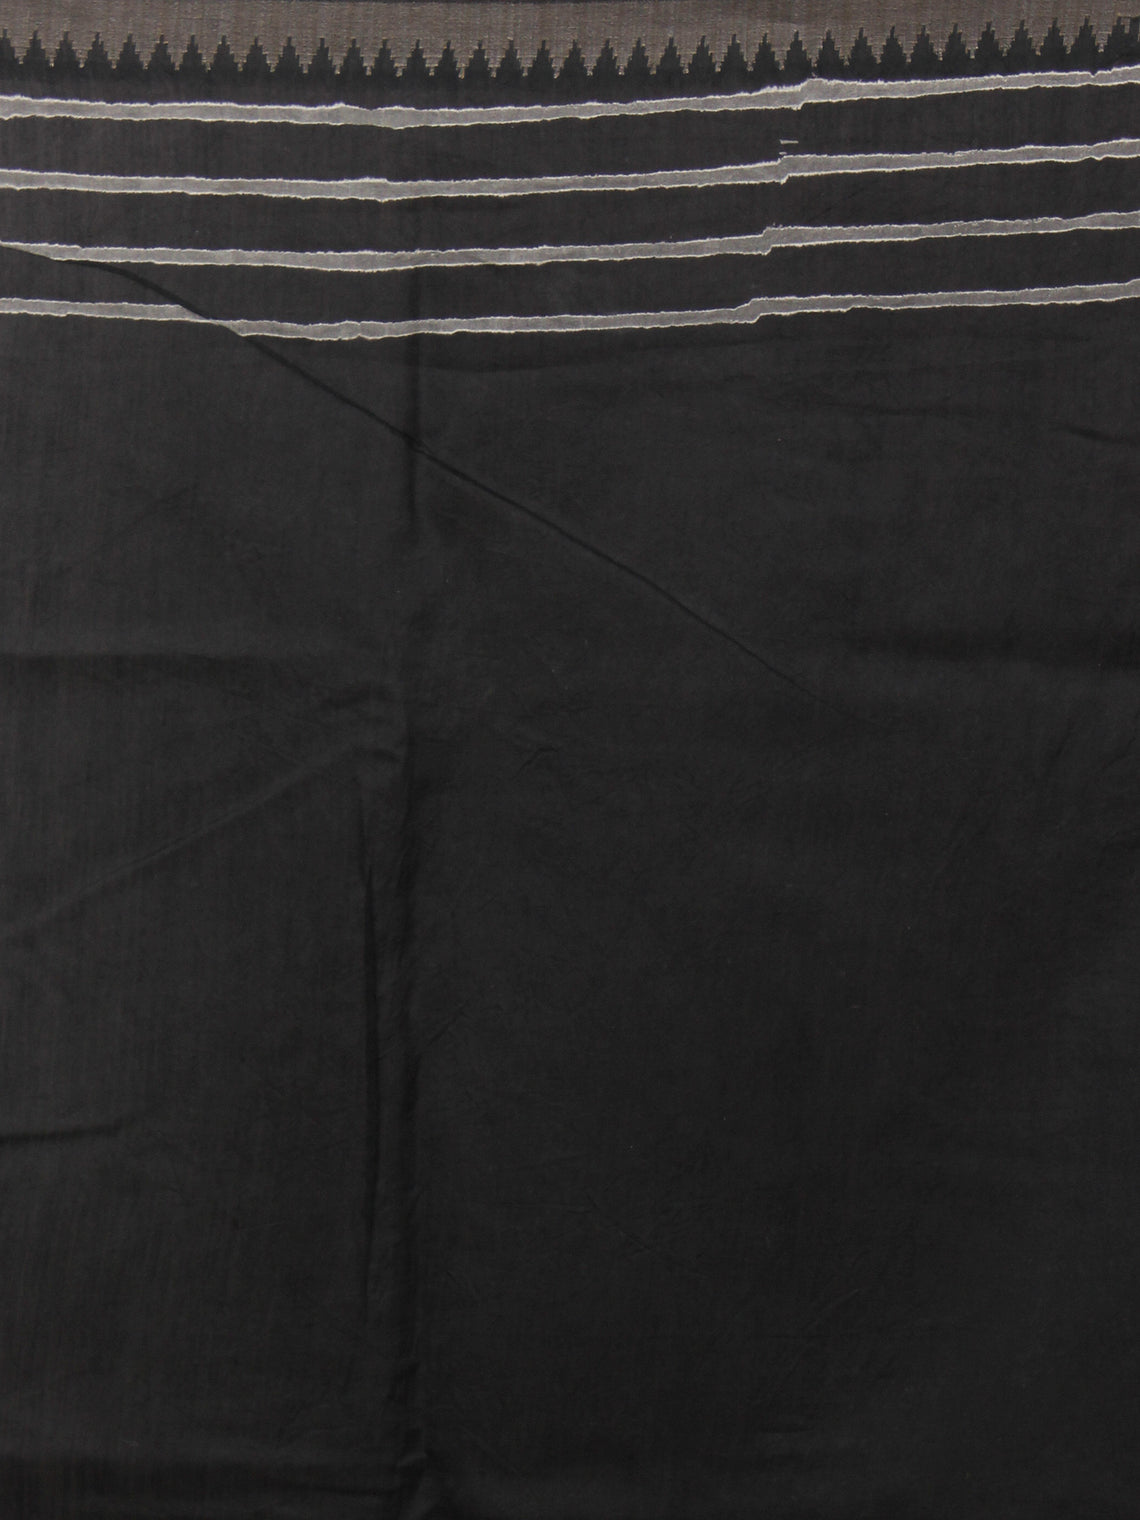 Black White Leharia Hand Block Printed in Natural Vegetable Colors Chanderi Saree With Geecha Border - S03170325